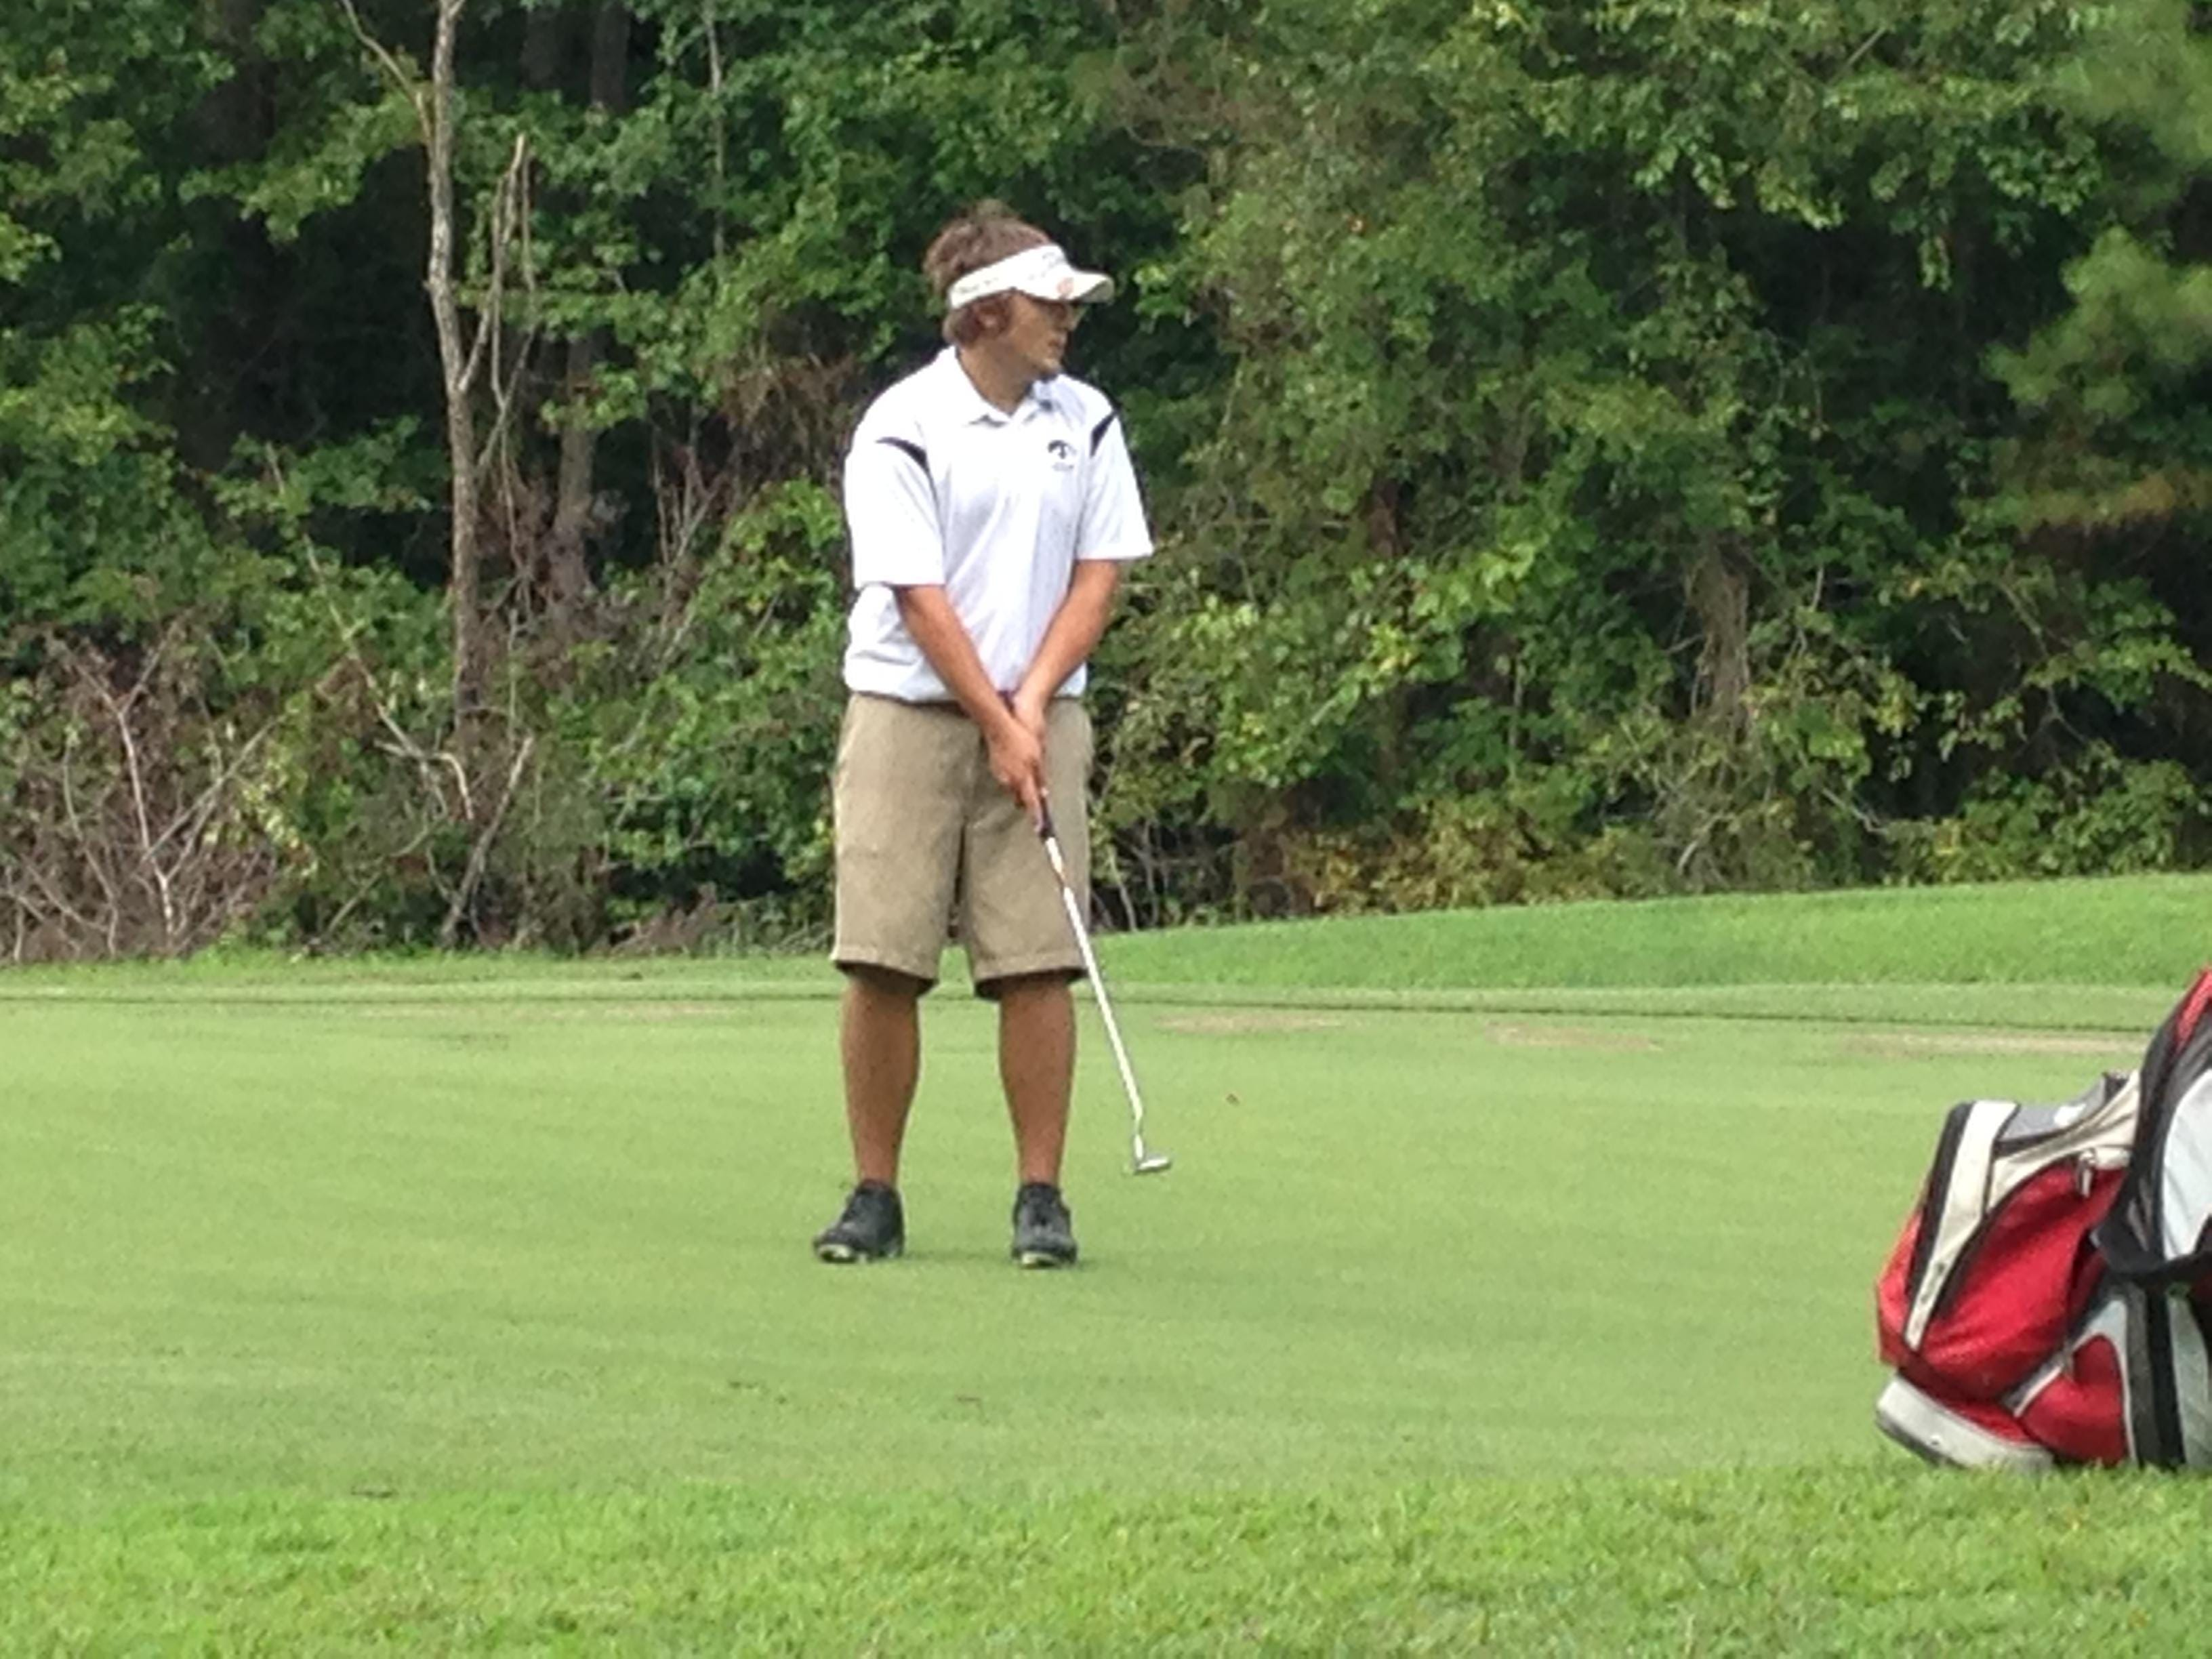 A South Side golfer watches his putt Tuesday at Chickasaw Golf Course.